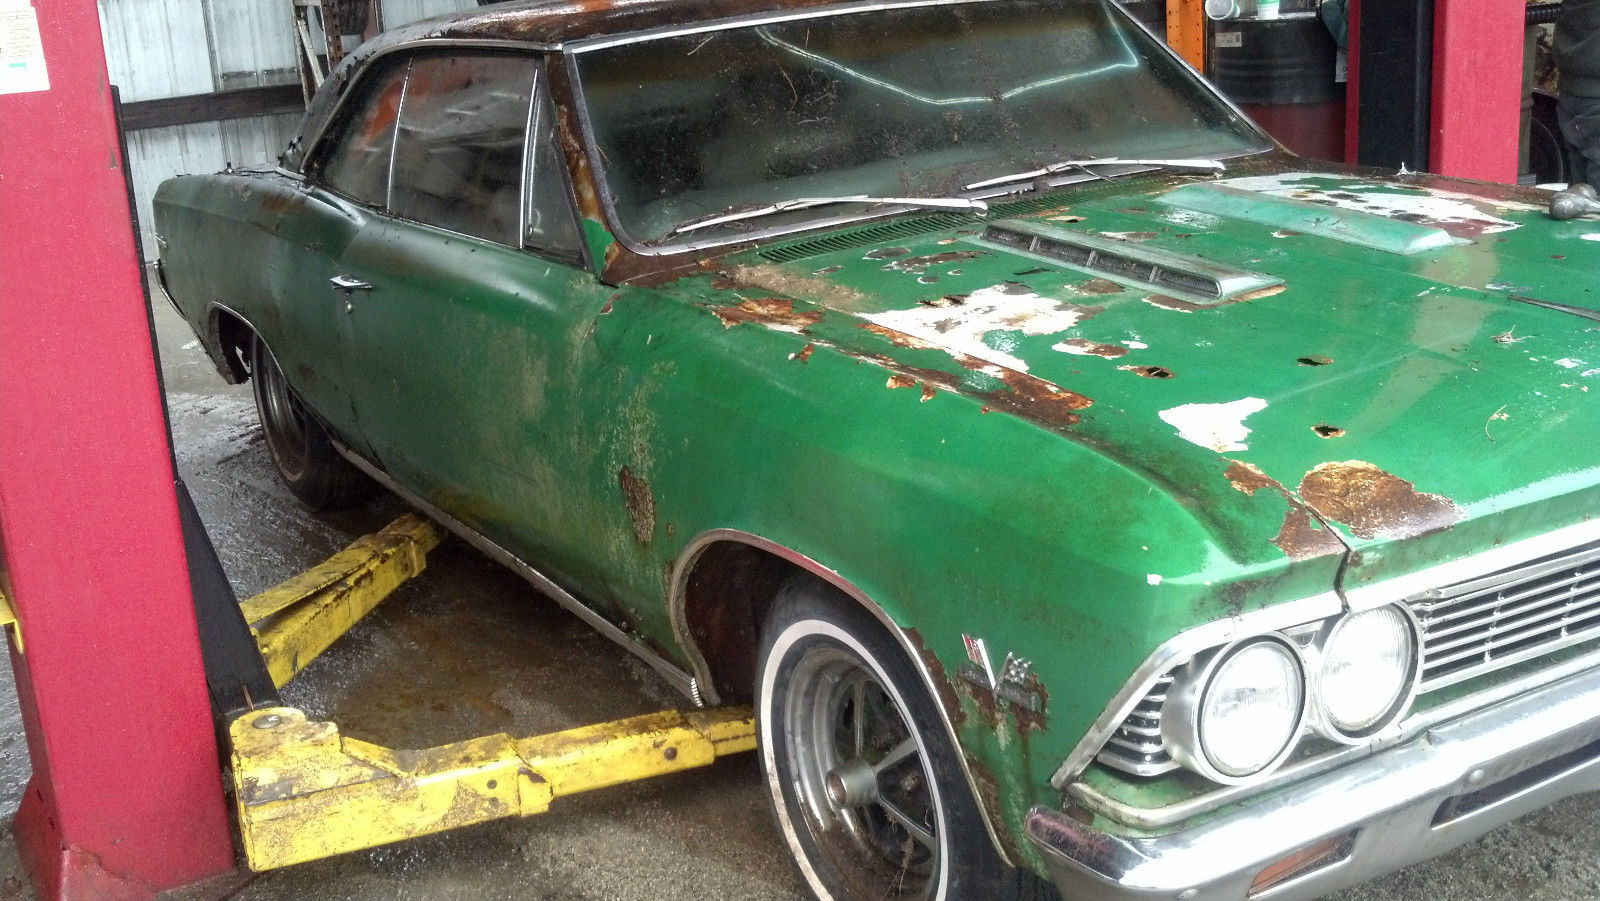 1966 Chevelle Ss 396 Convertible 138 Car Matching Numbers Classic Chevy